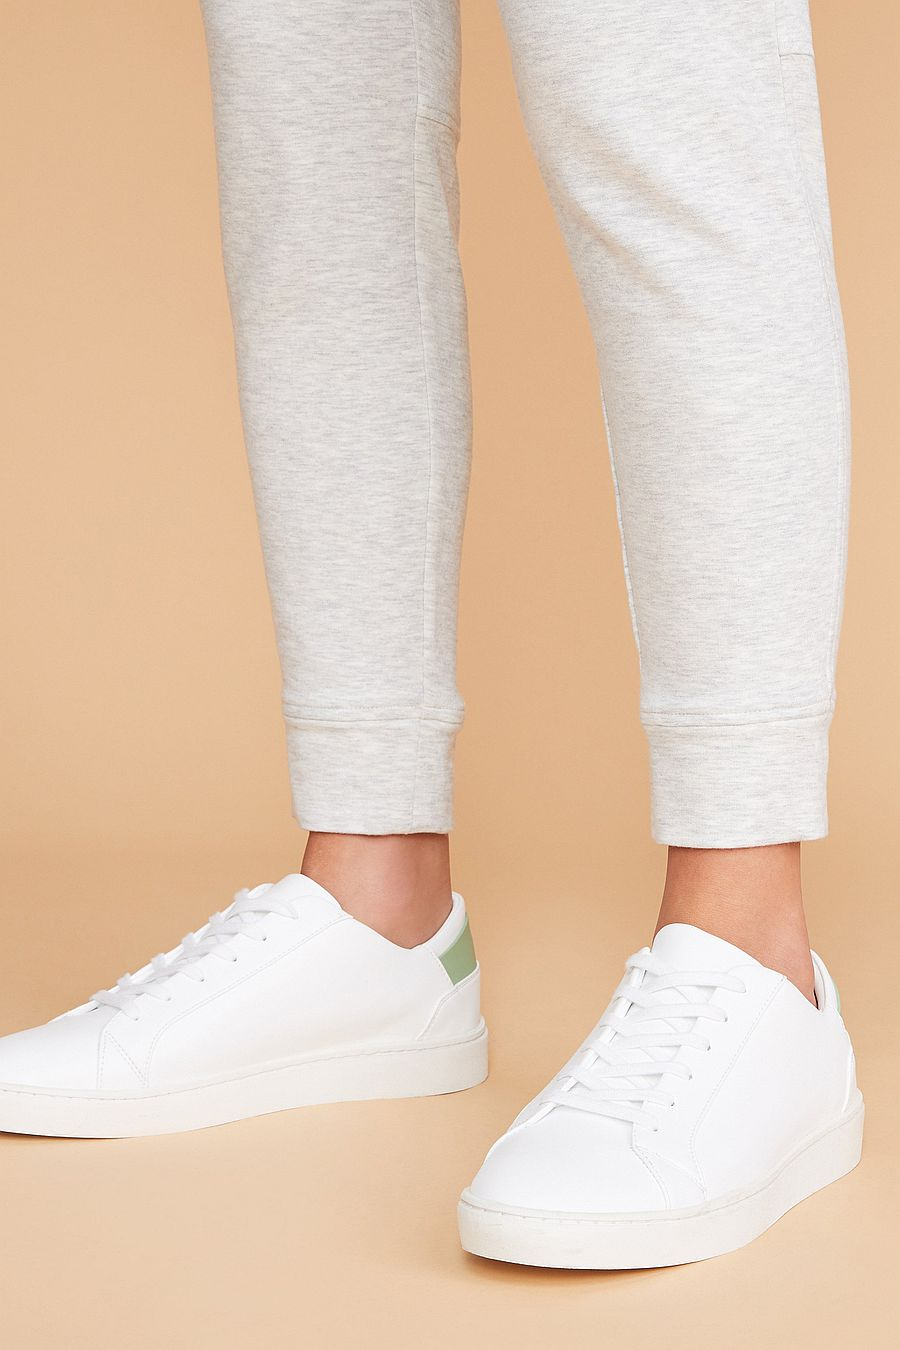 Thousand Fell Women's Lace Up | Green